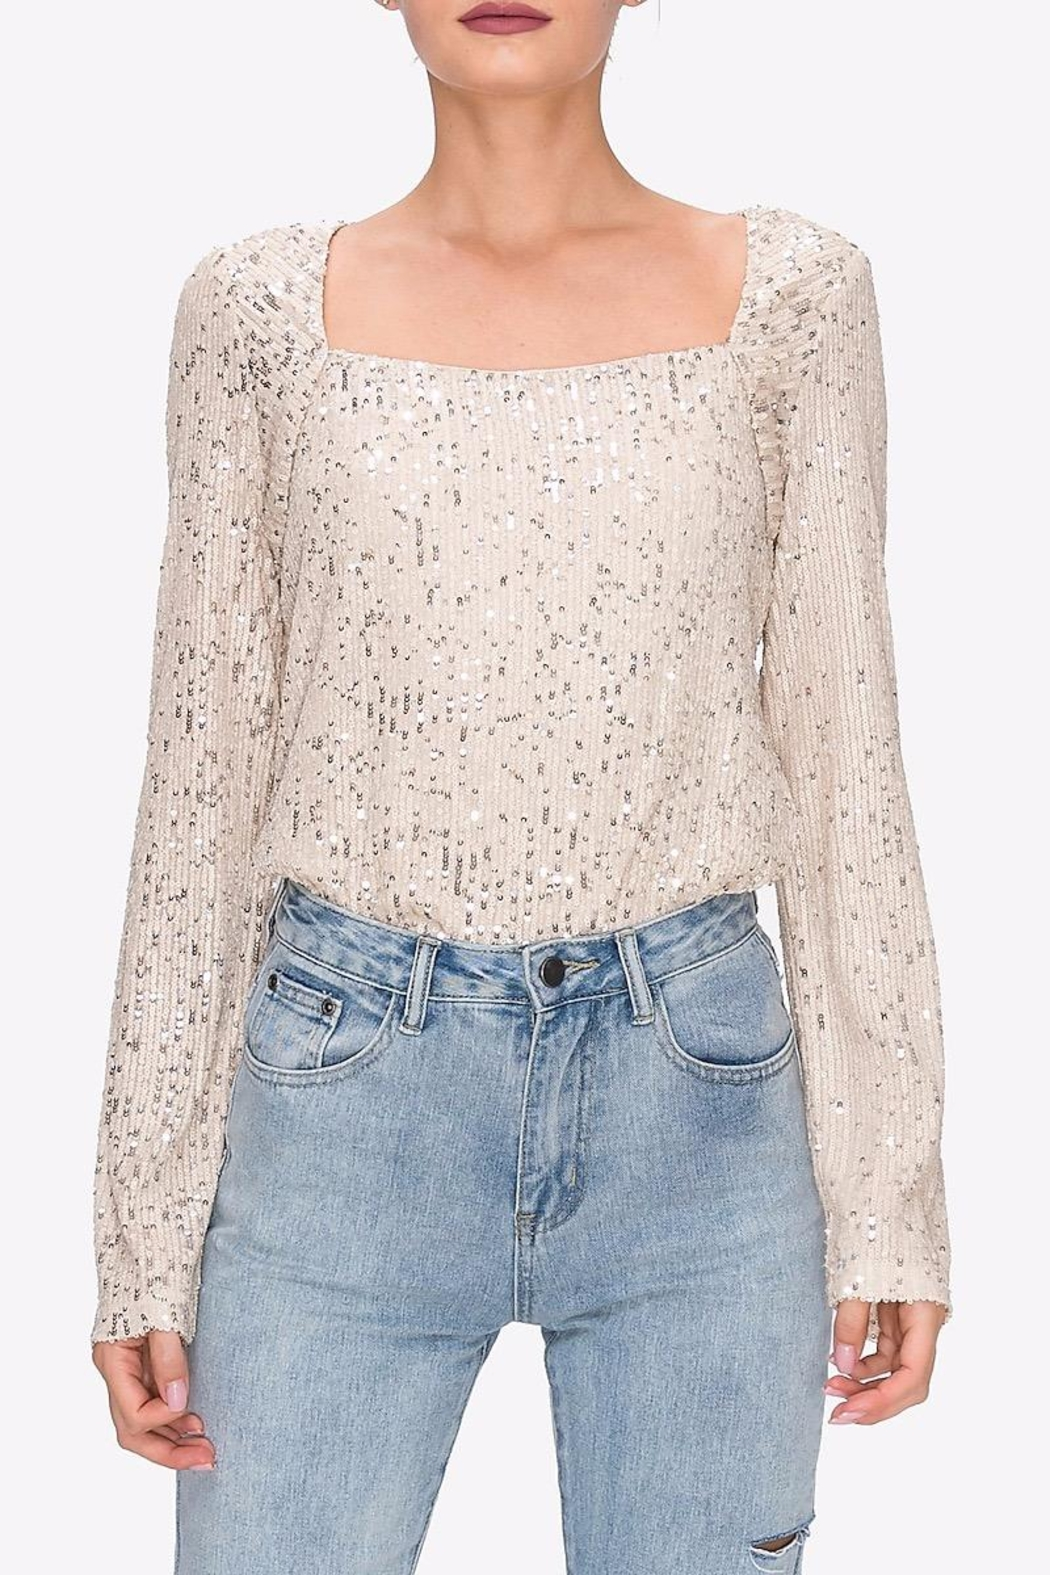 Endless Rose Square-Neck Sequin Top - Main Image